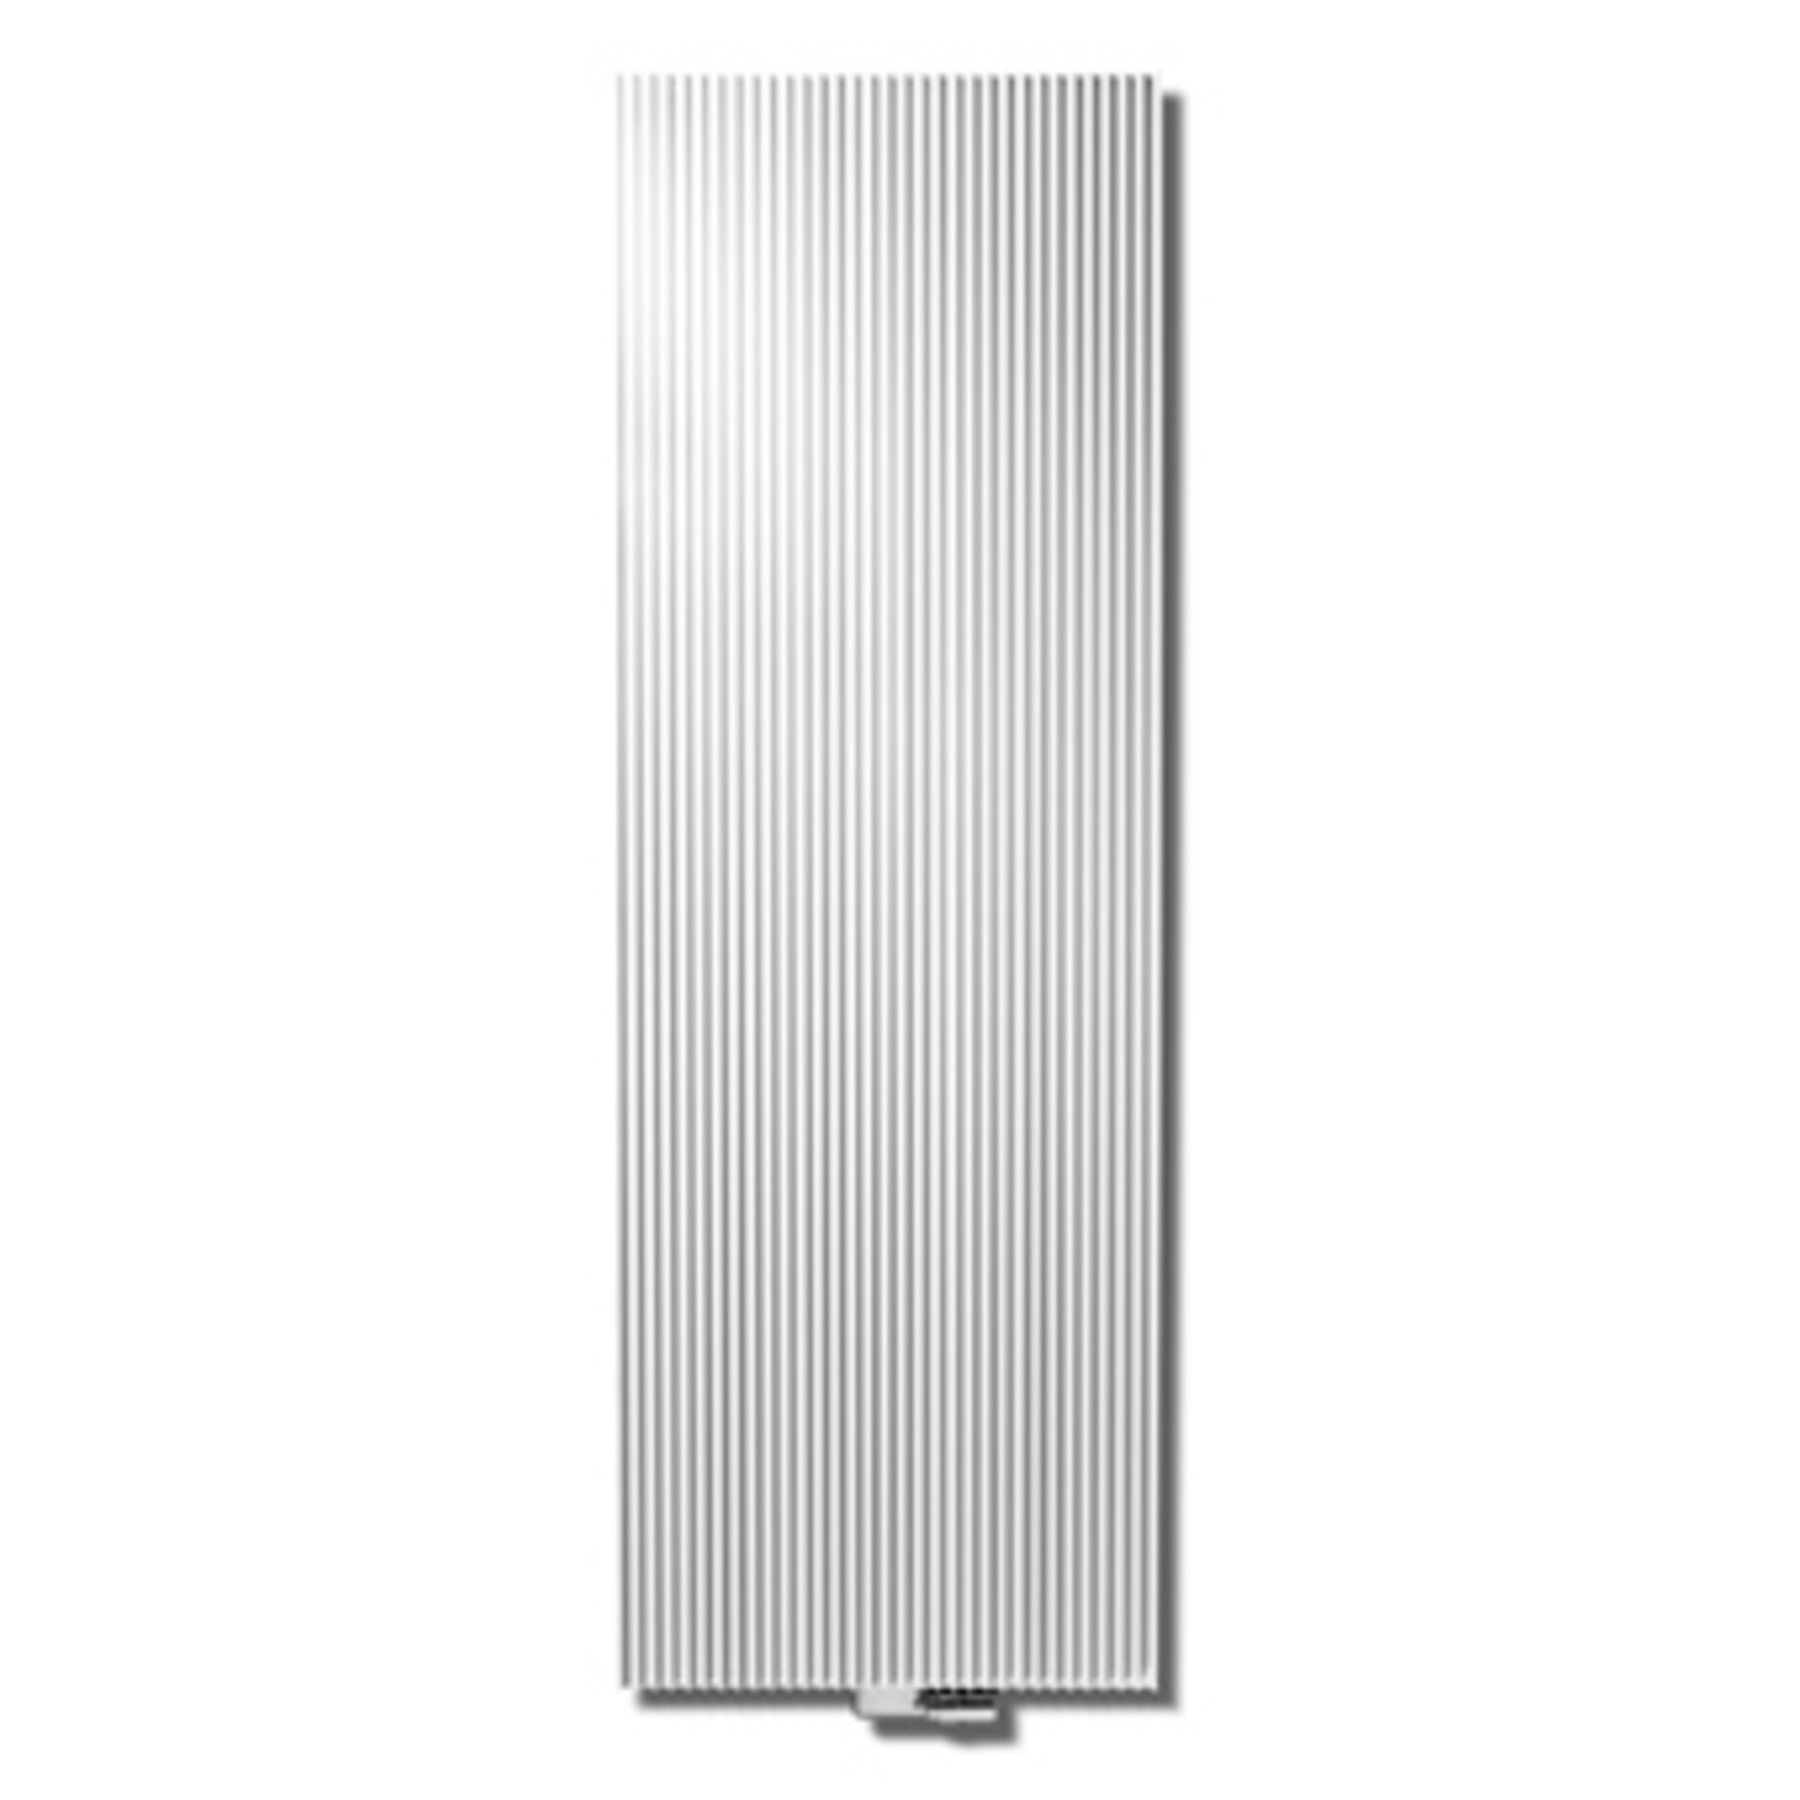 Vasco Canyon designradiator verticaal 1800x530mm 1862 watt aansluting 66 pergamon (0019)